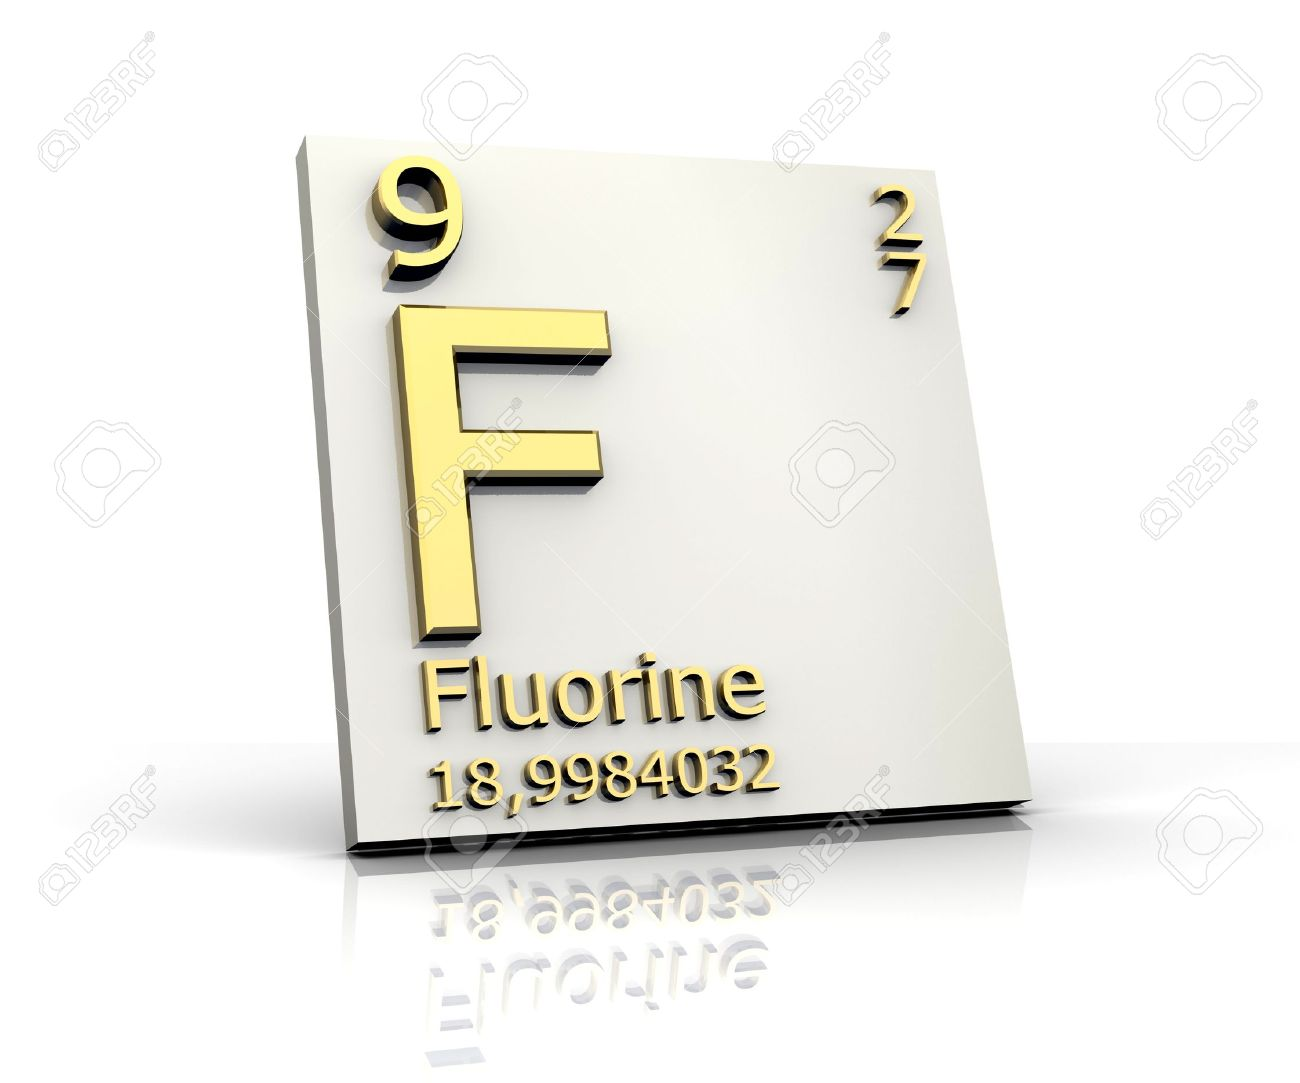 Fluorine form periodic table of elements stock photo picture and fluorine form periodic table of elements stock photo 4296426 urtaz Images